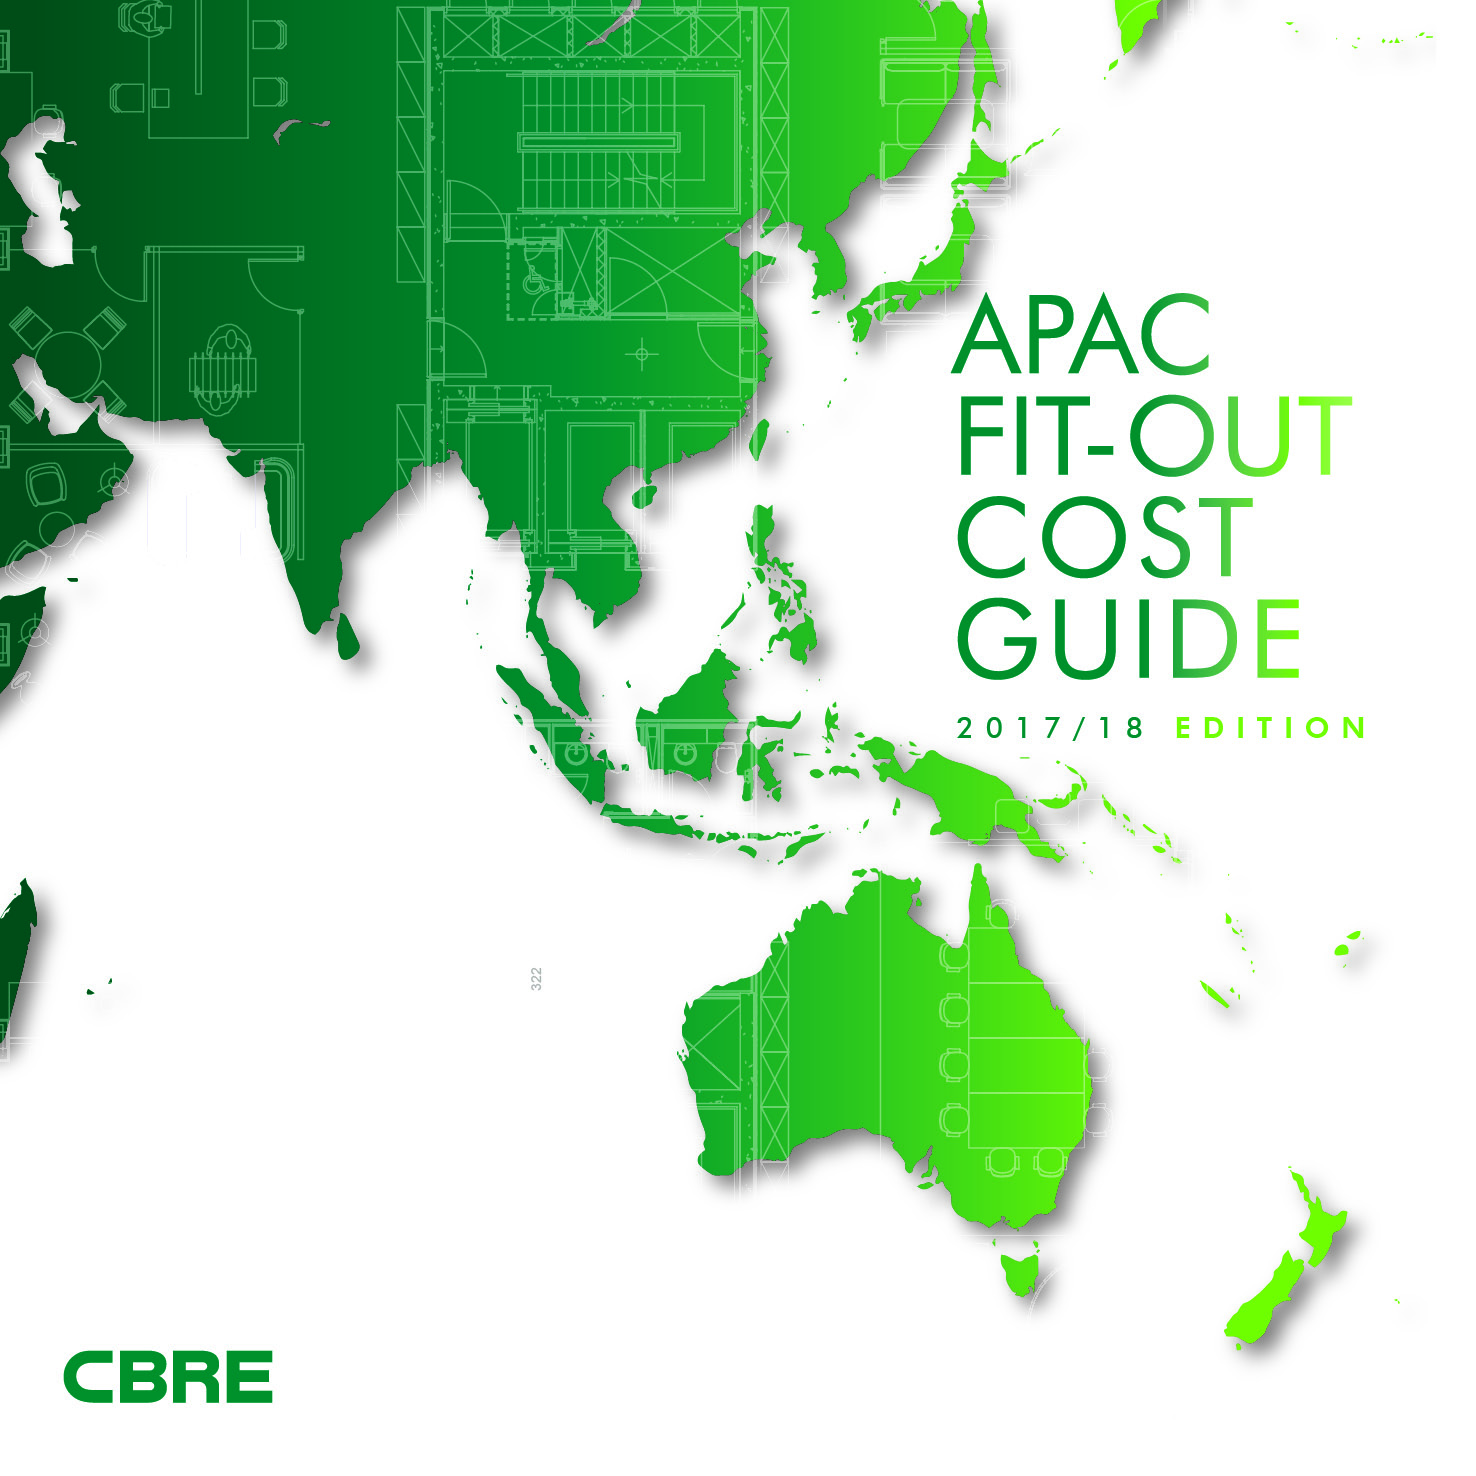 APAC Fit Out Cost Guide 2017/18